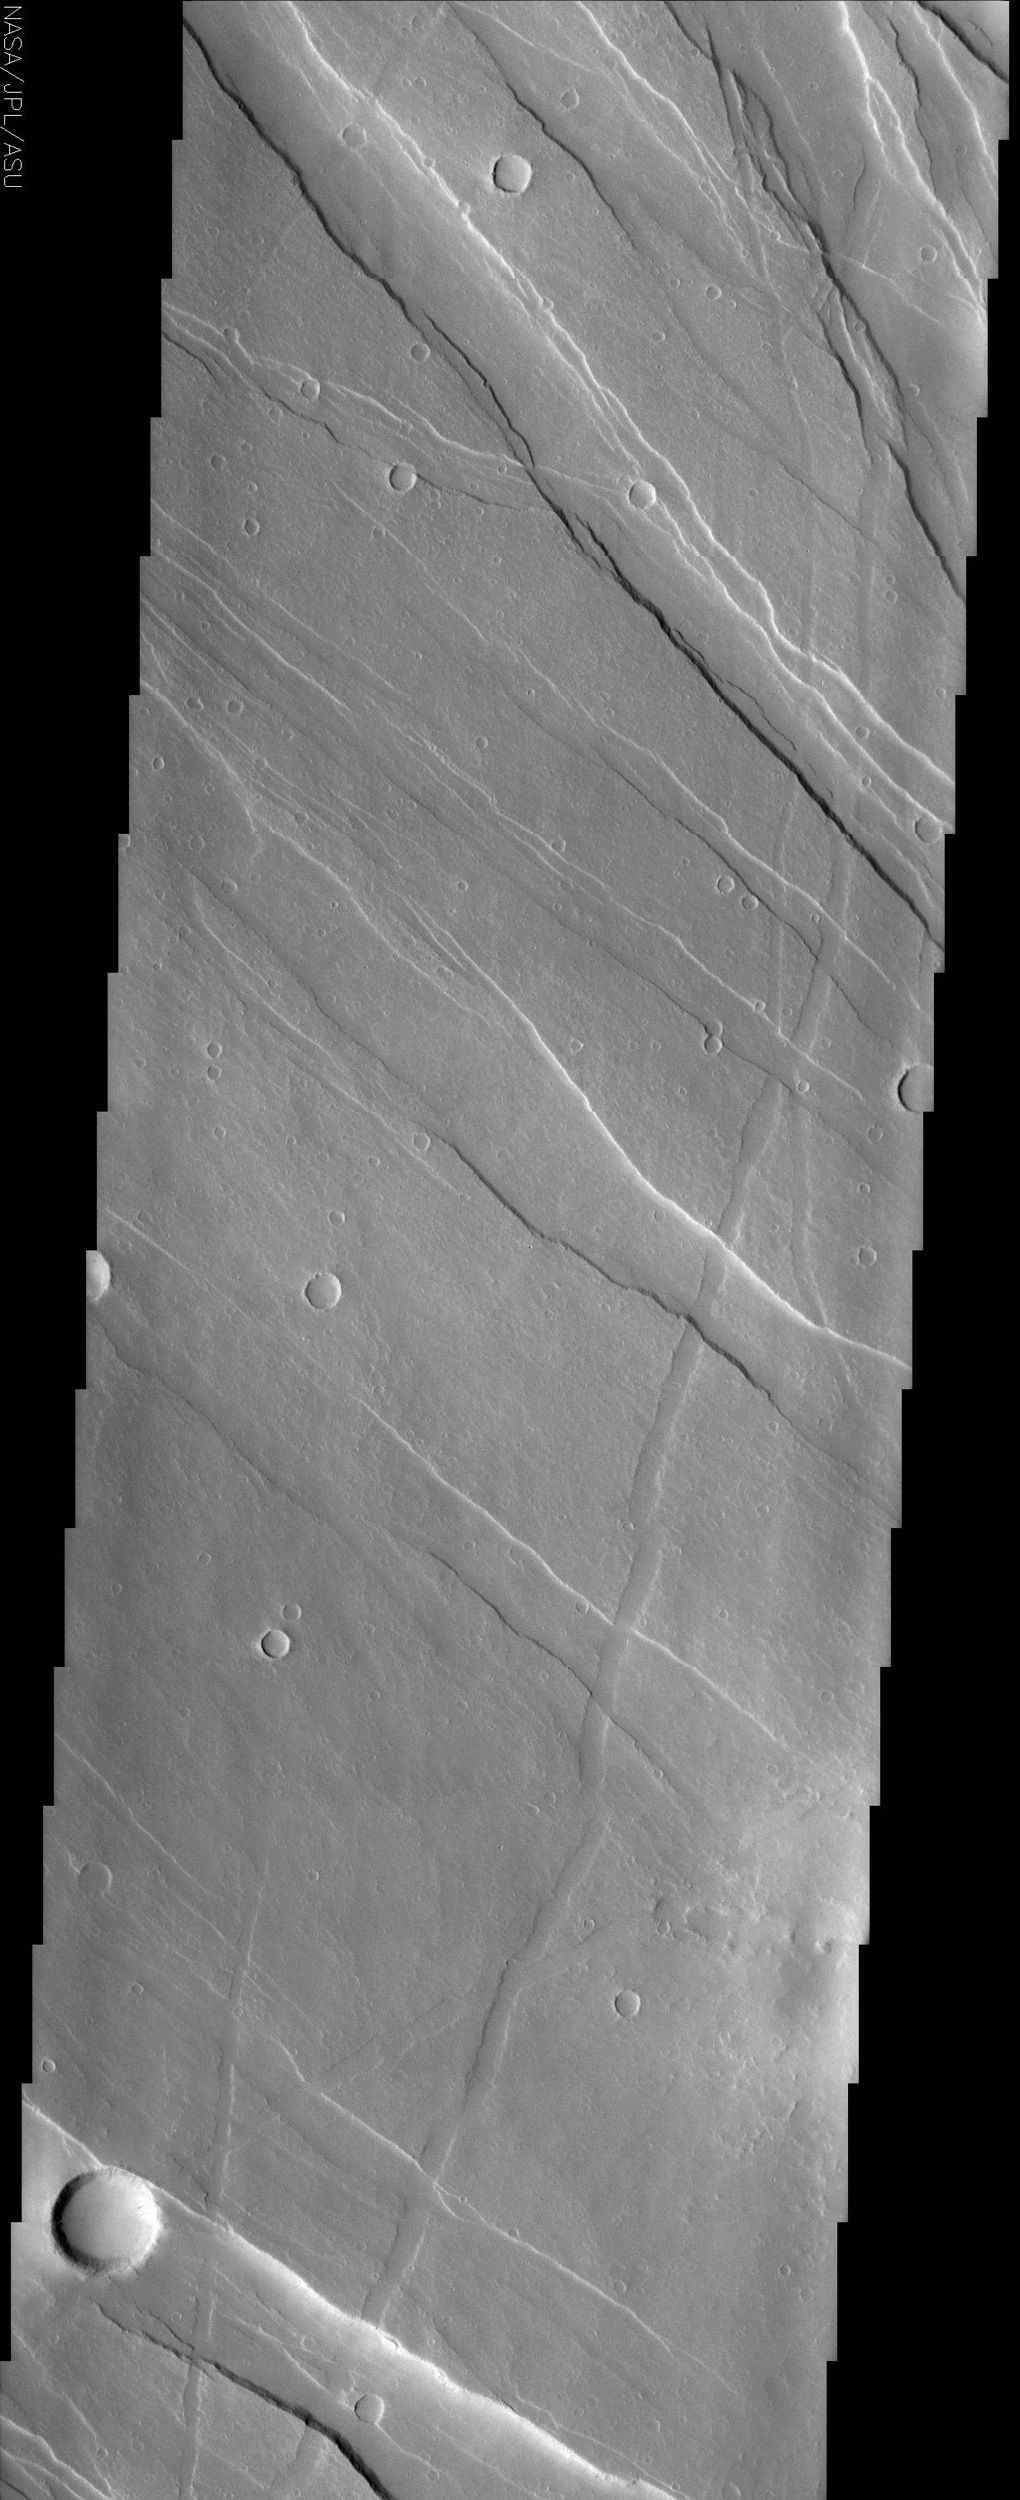 This image of Tharsis Rise from NASA's Mars Odyssey shows a series of linear features called graben, which are associated with crustal extension resulting in up and down blocks of crust that run perpendicular to the direction of the extension.